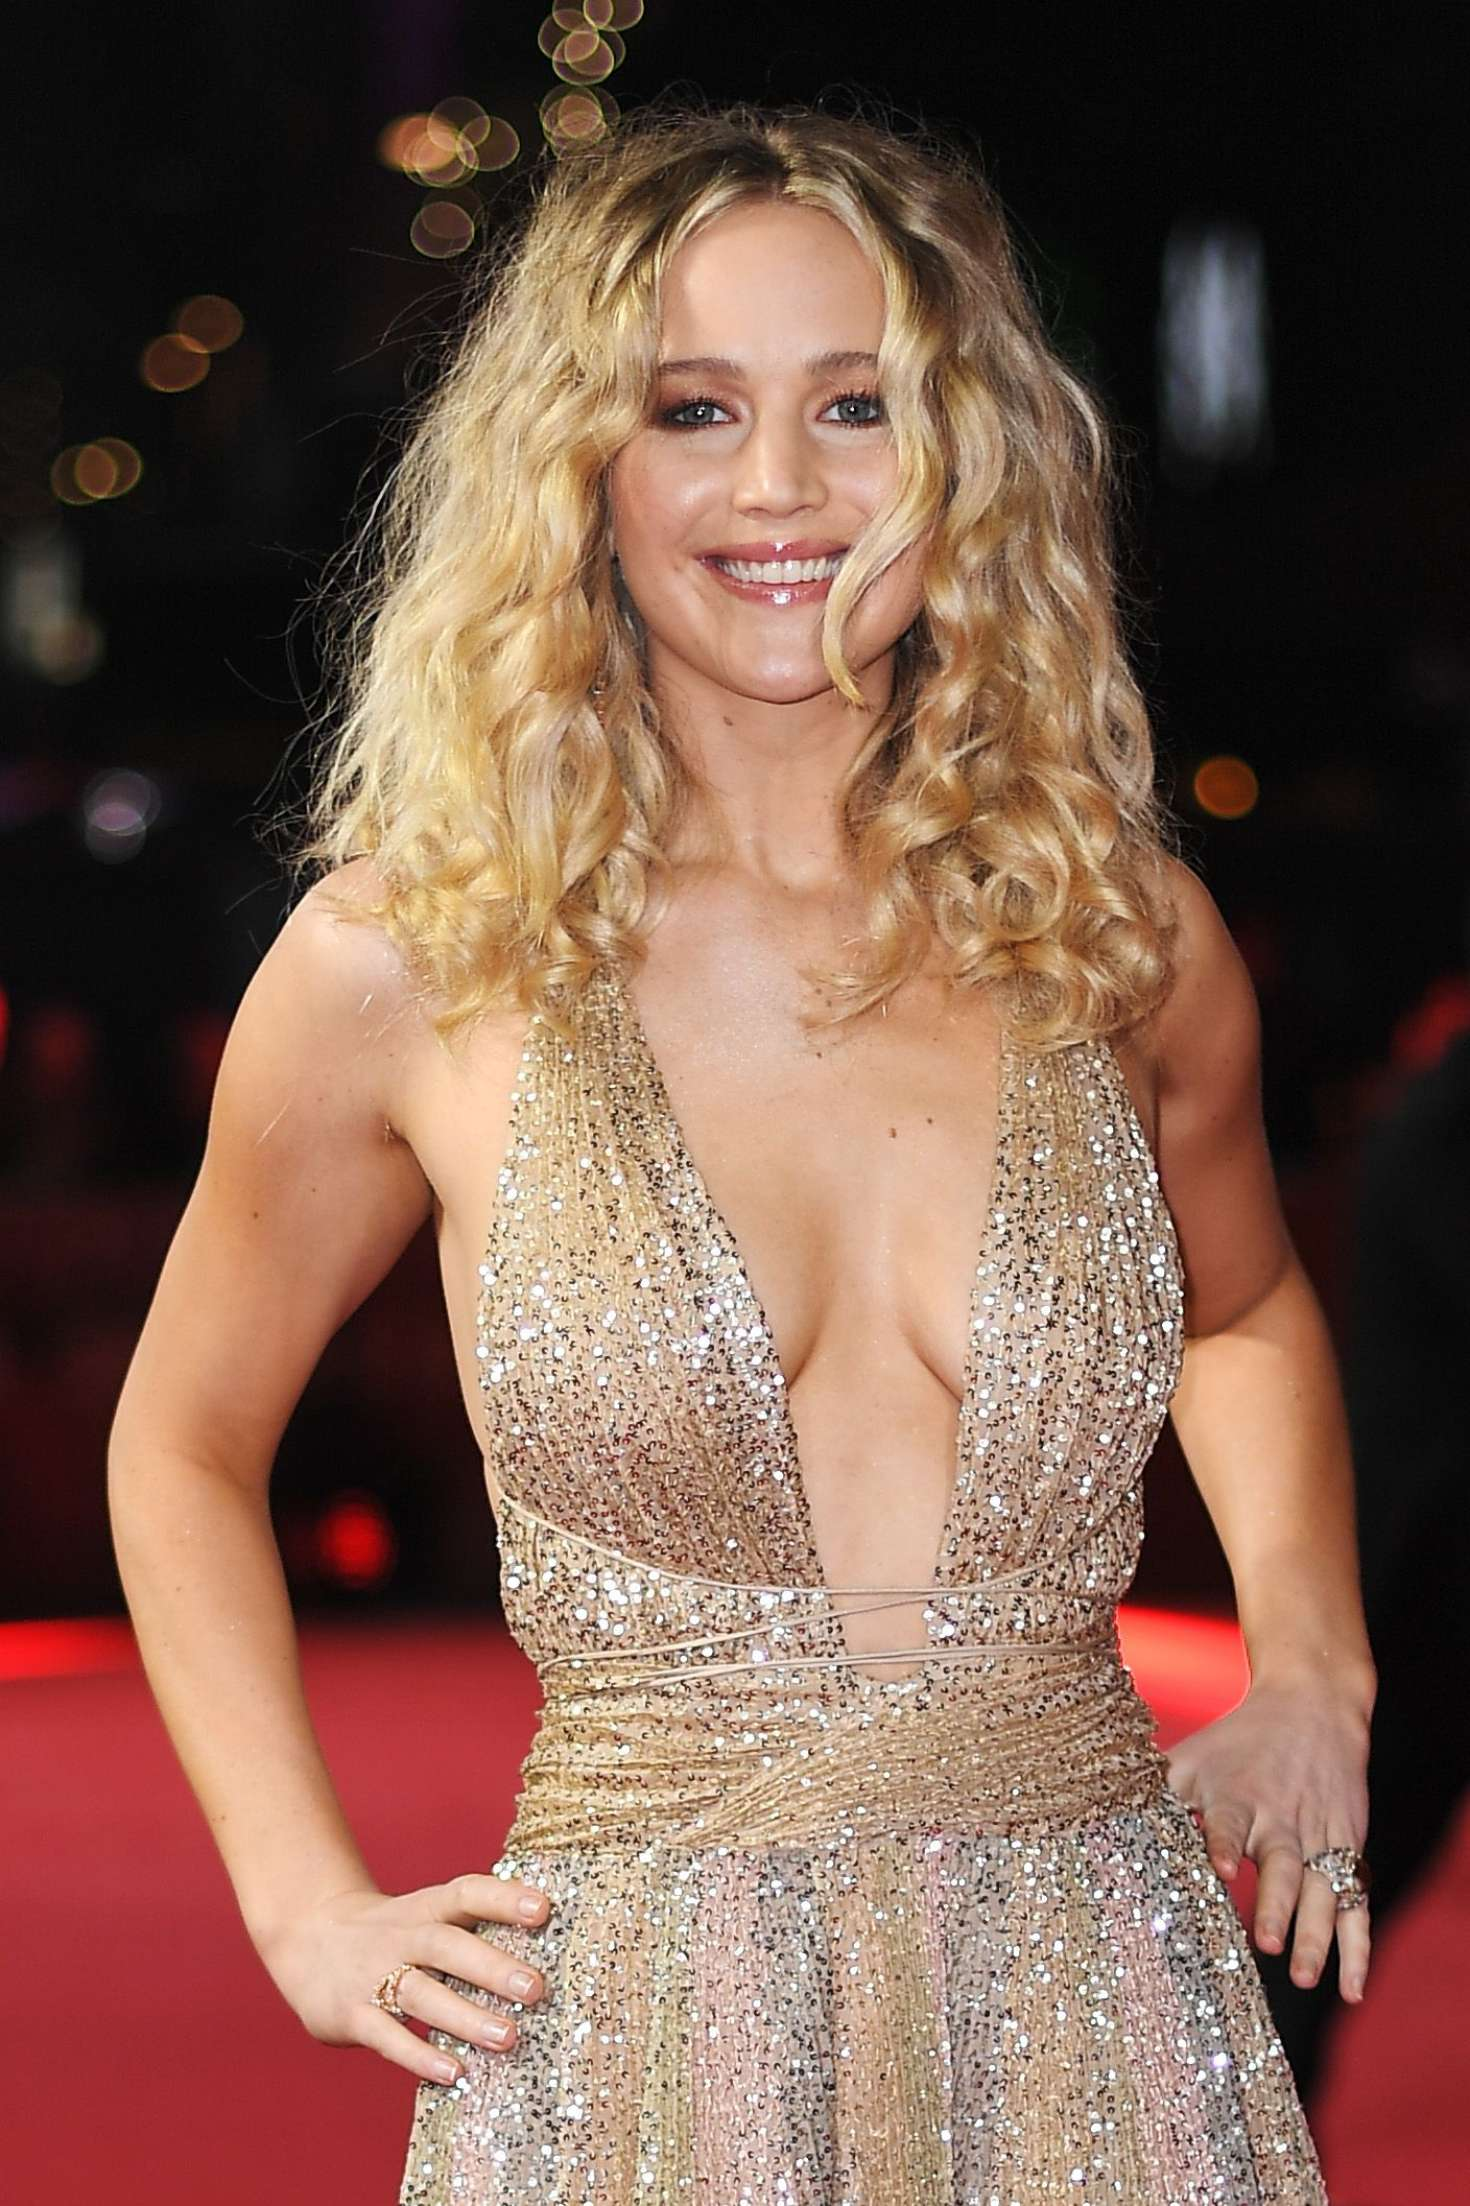 Jennifer Lawrence Red Sparrow Premiere In London 10